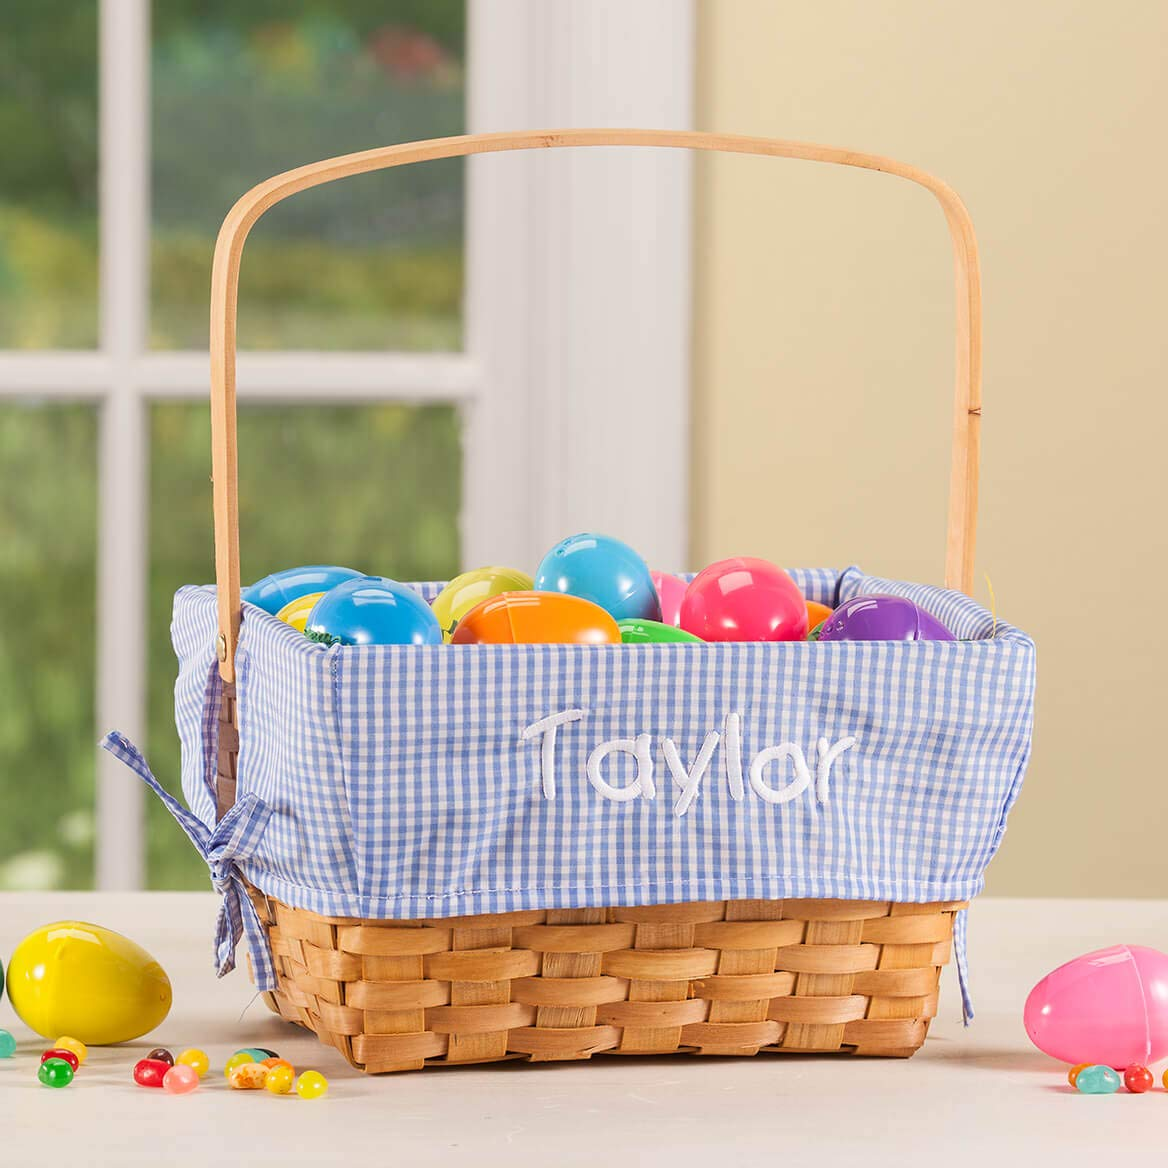 Fox Valley Traders Personalized Blue Gingham Wicker Easter Basket by Fox Valley Traders (Image #2)